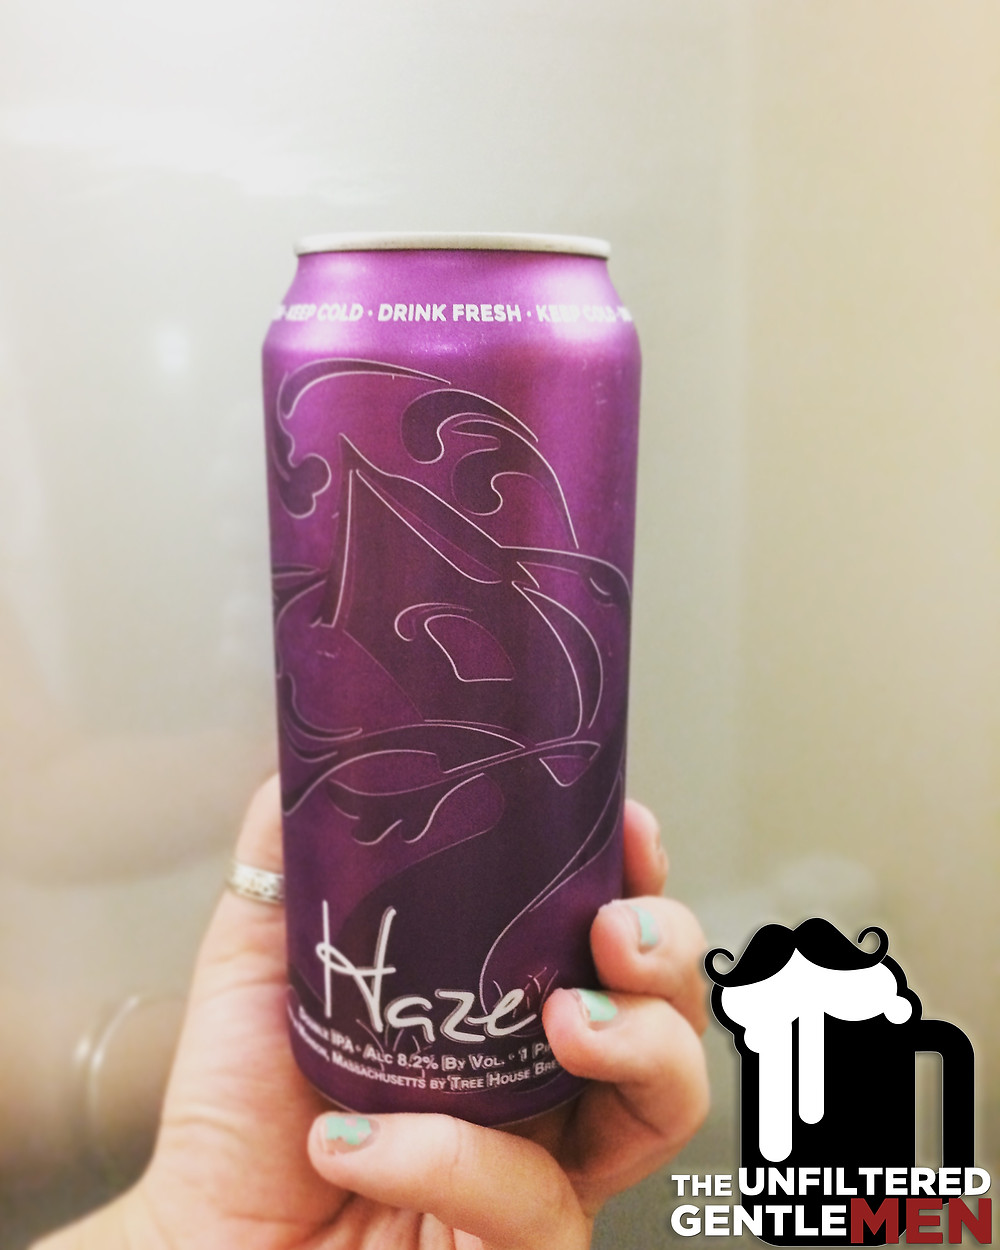 It's The Beer Girl Reviews Tree House Brewing's Haze IPA on The Unfiltered Gentlemen